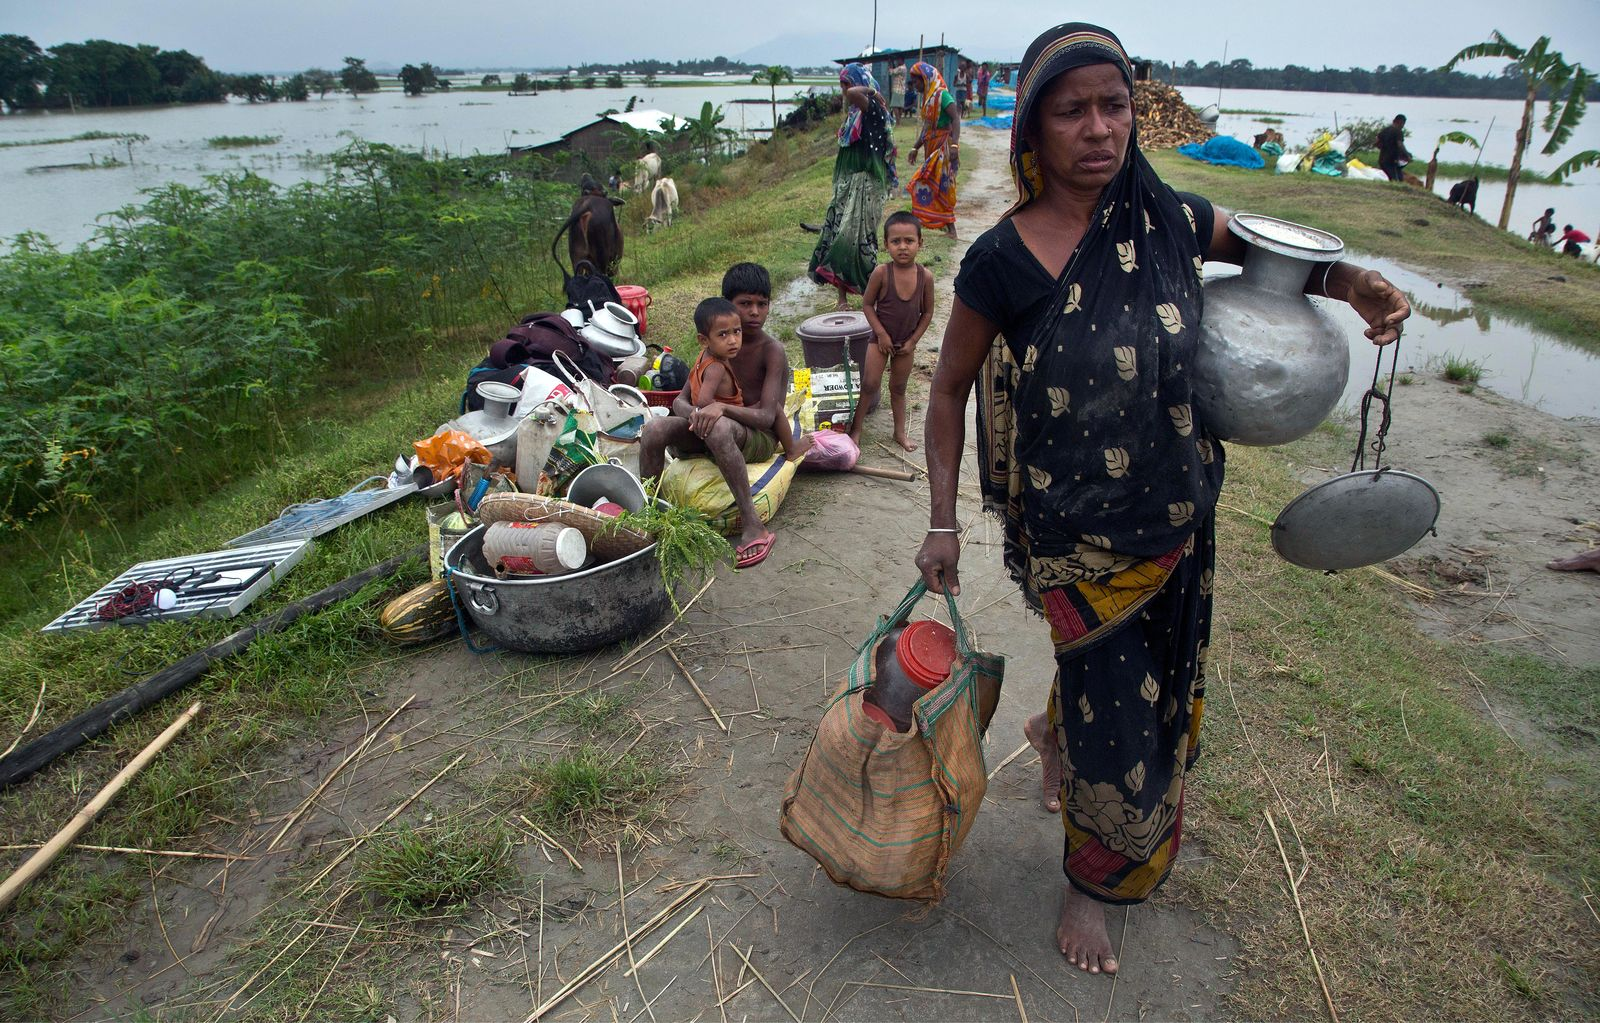 An Indian flood affected woman carries her belongings on an embankment to take shelter in Pabhokathi village east of Gauhati India, Monday, July 15, 2019. .(AP Photo/Anupam Nath)